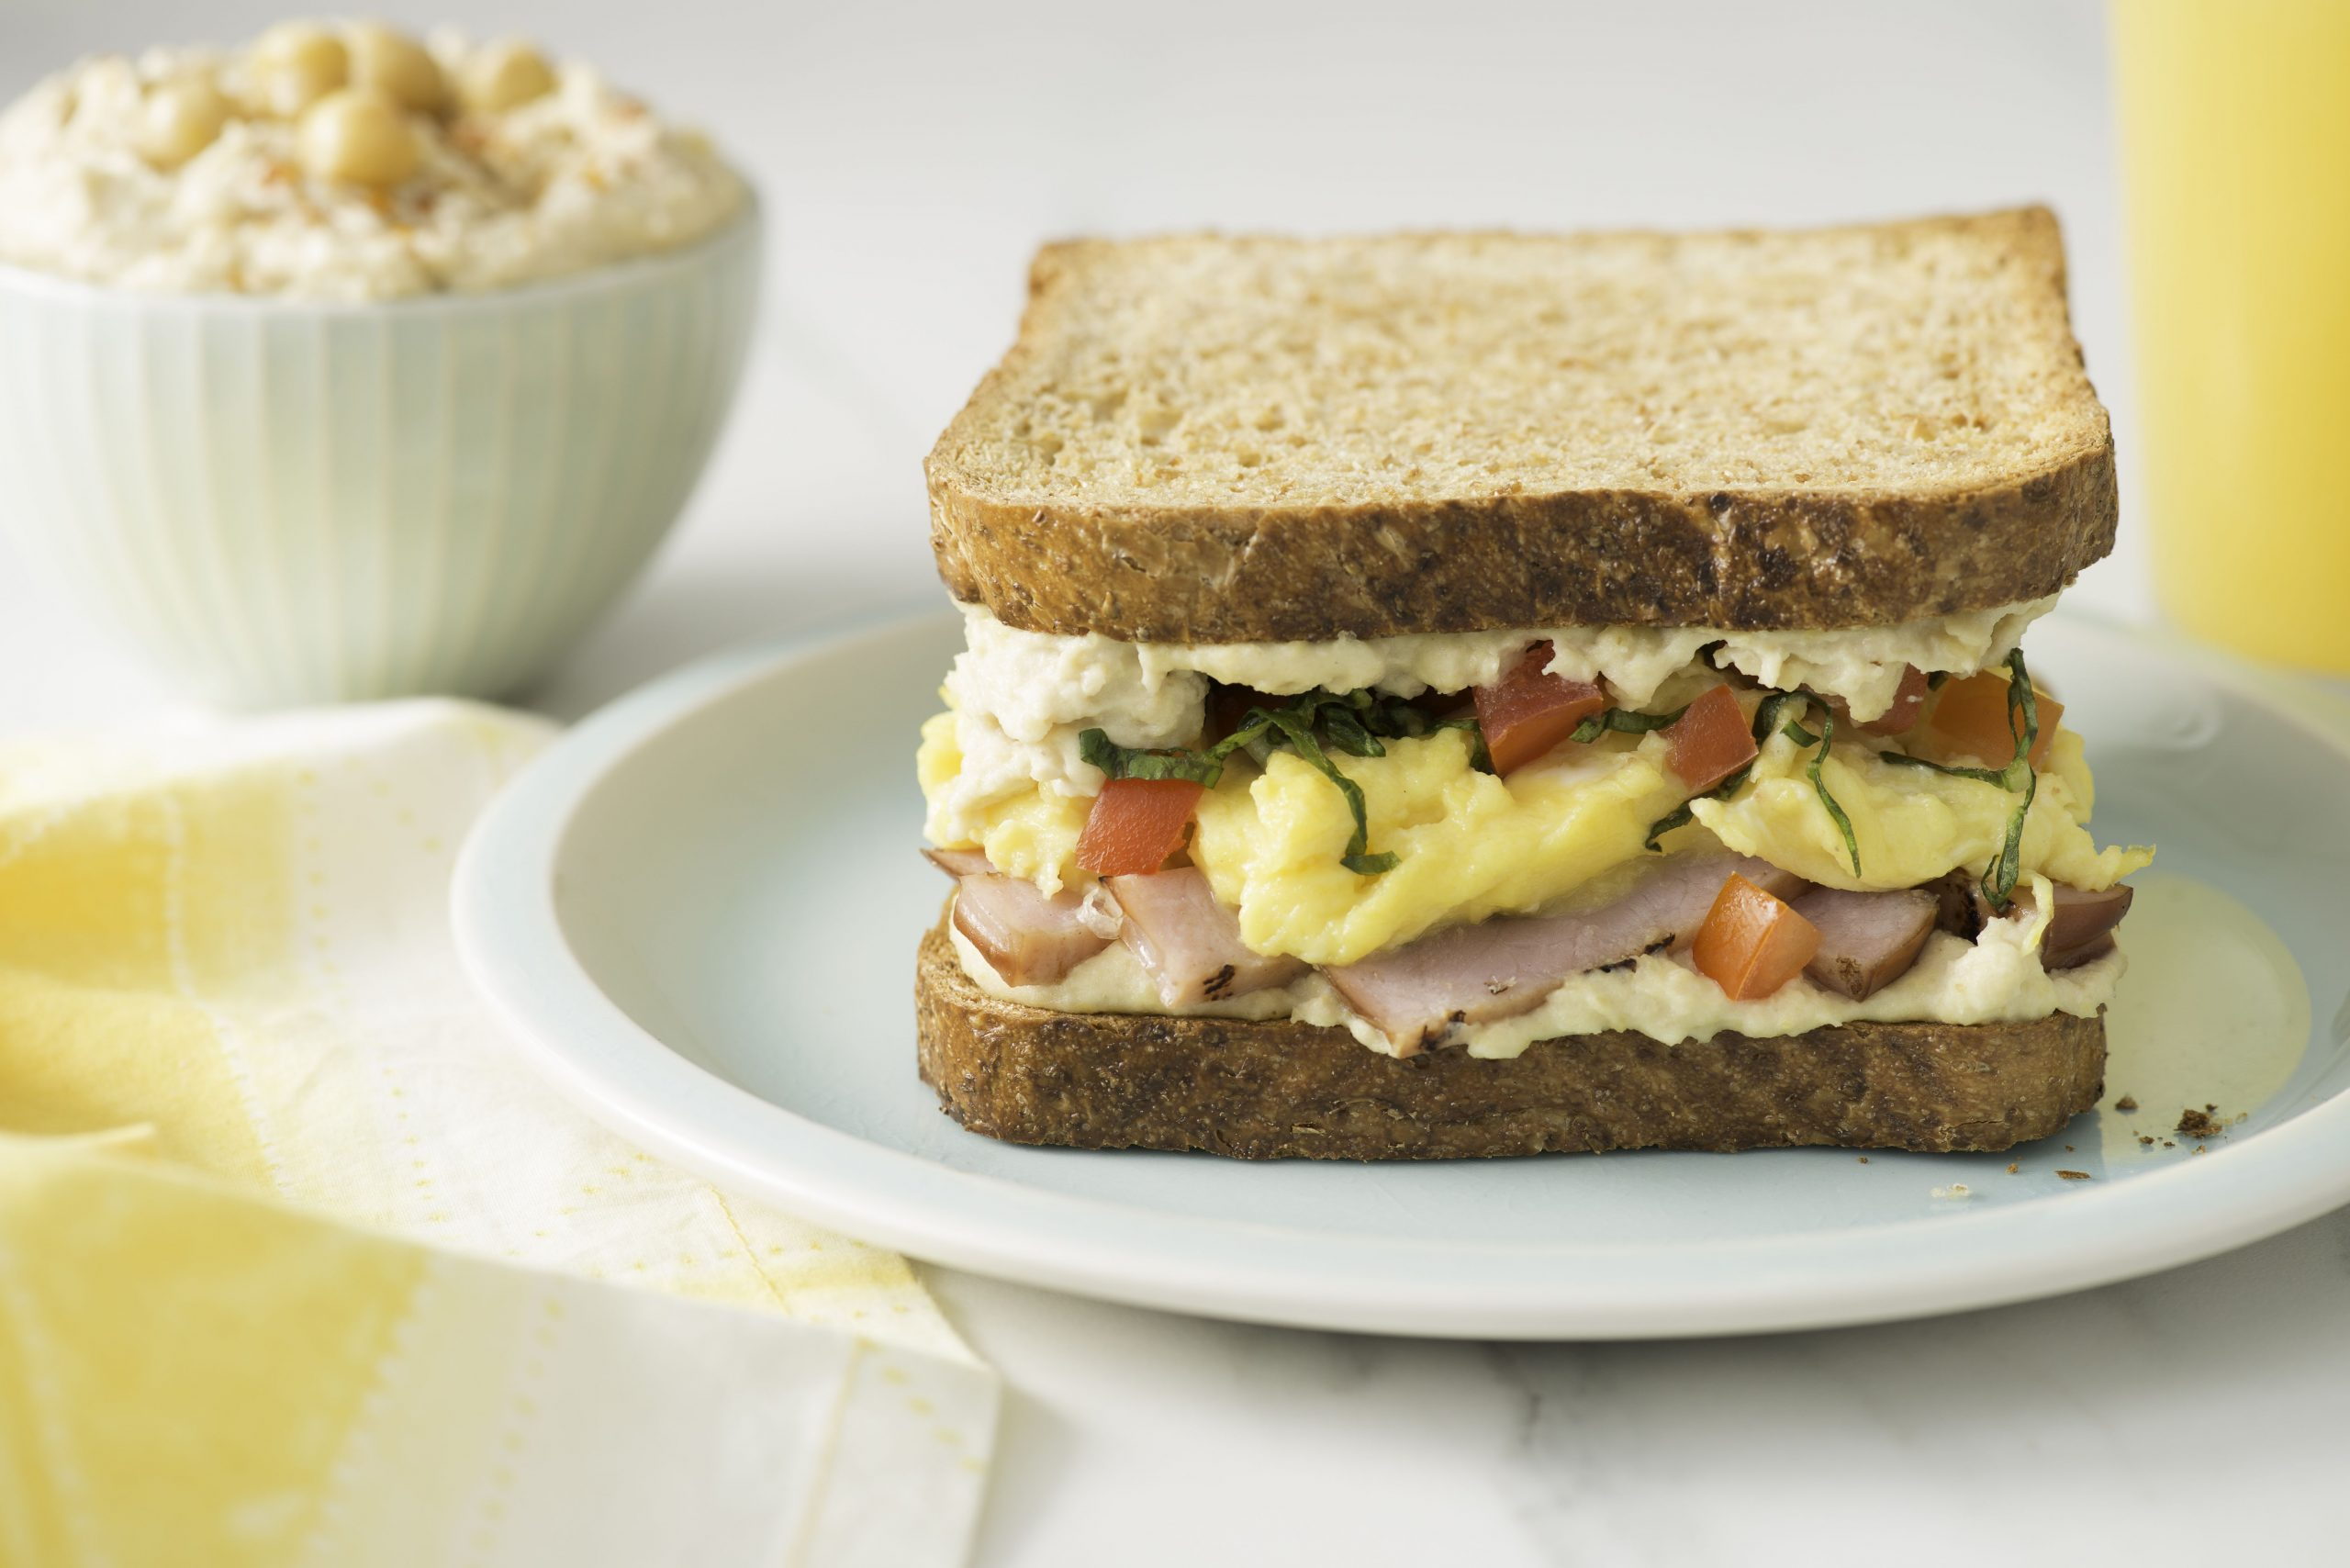 Breakfast Sandwich with Hummus, Scrambled Eggs and Tomato - Sandwich Recipes With Nutritional Value